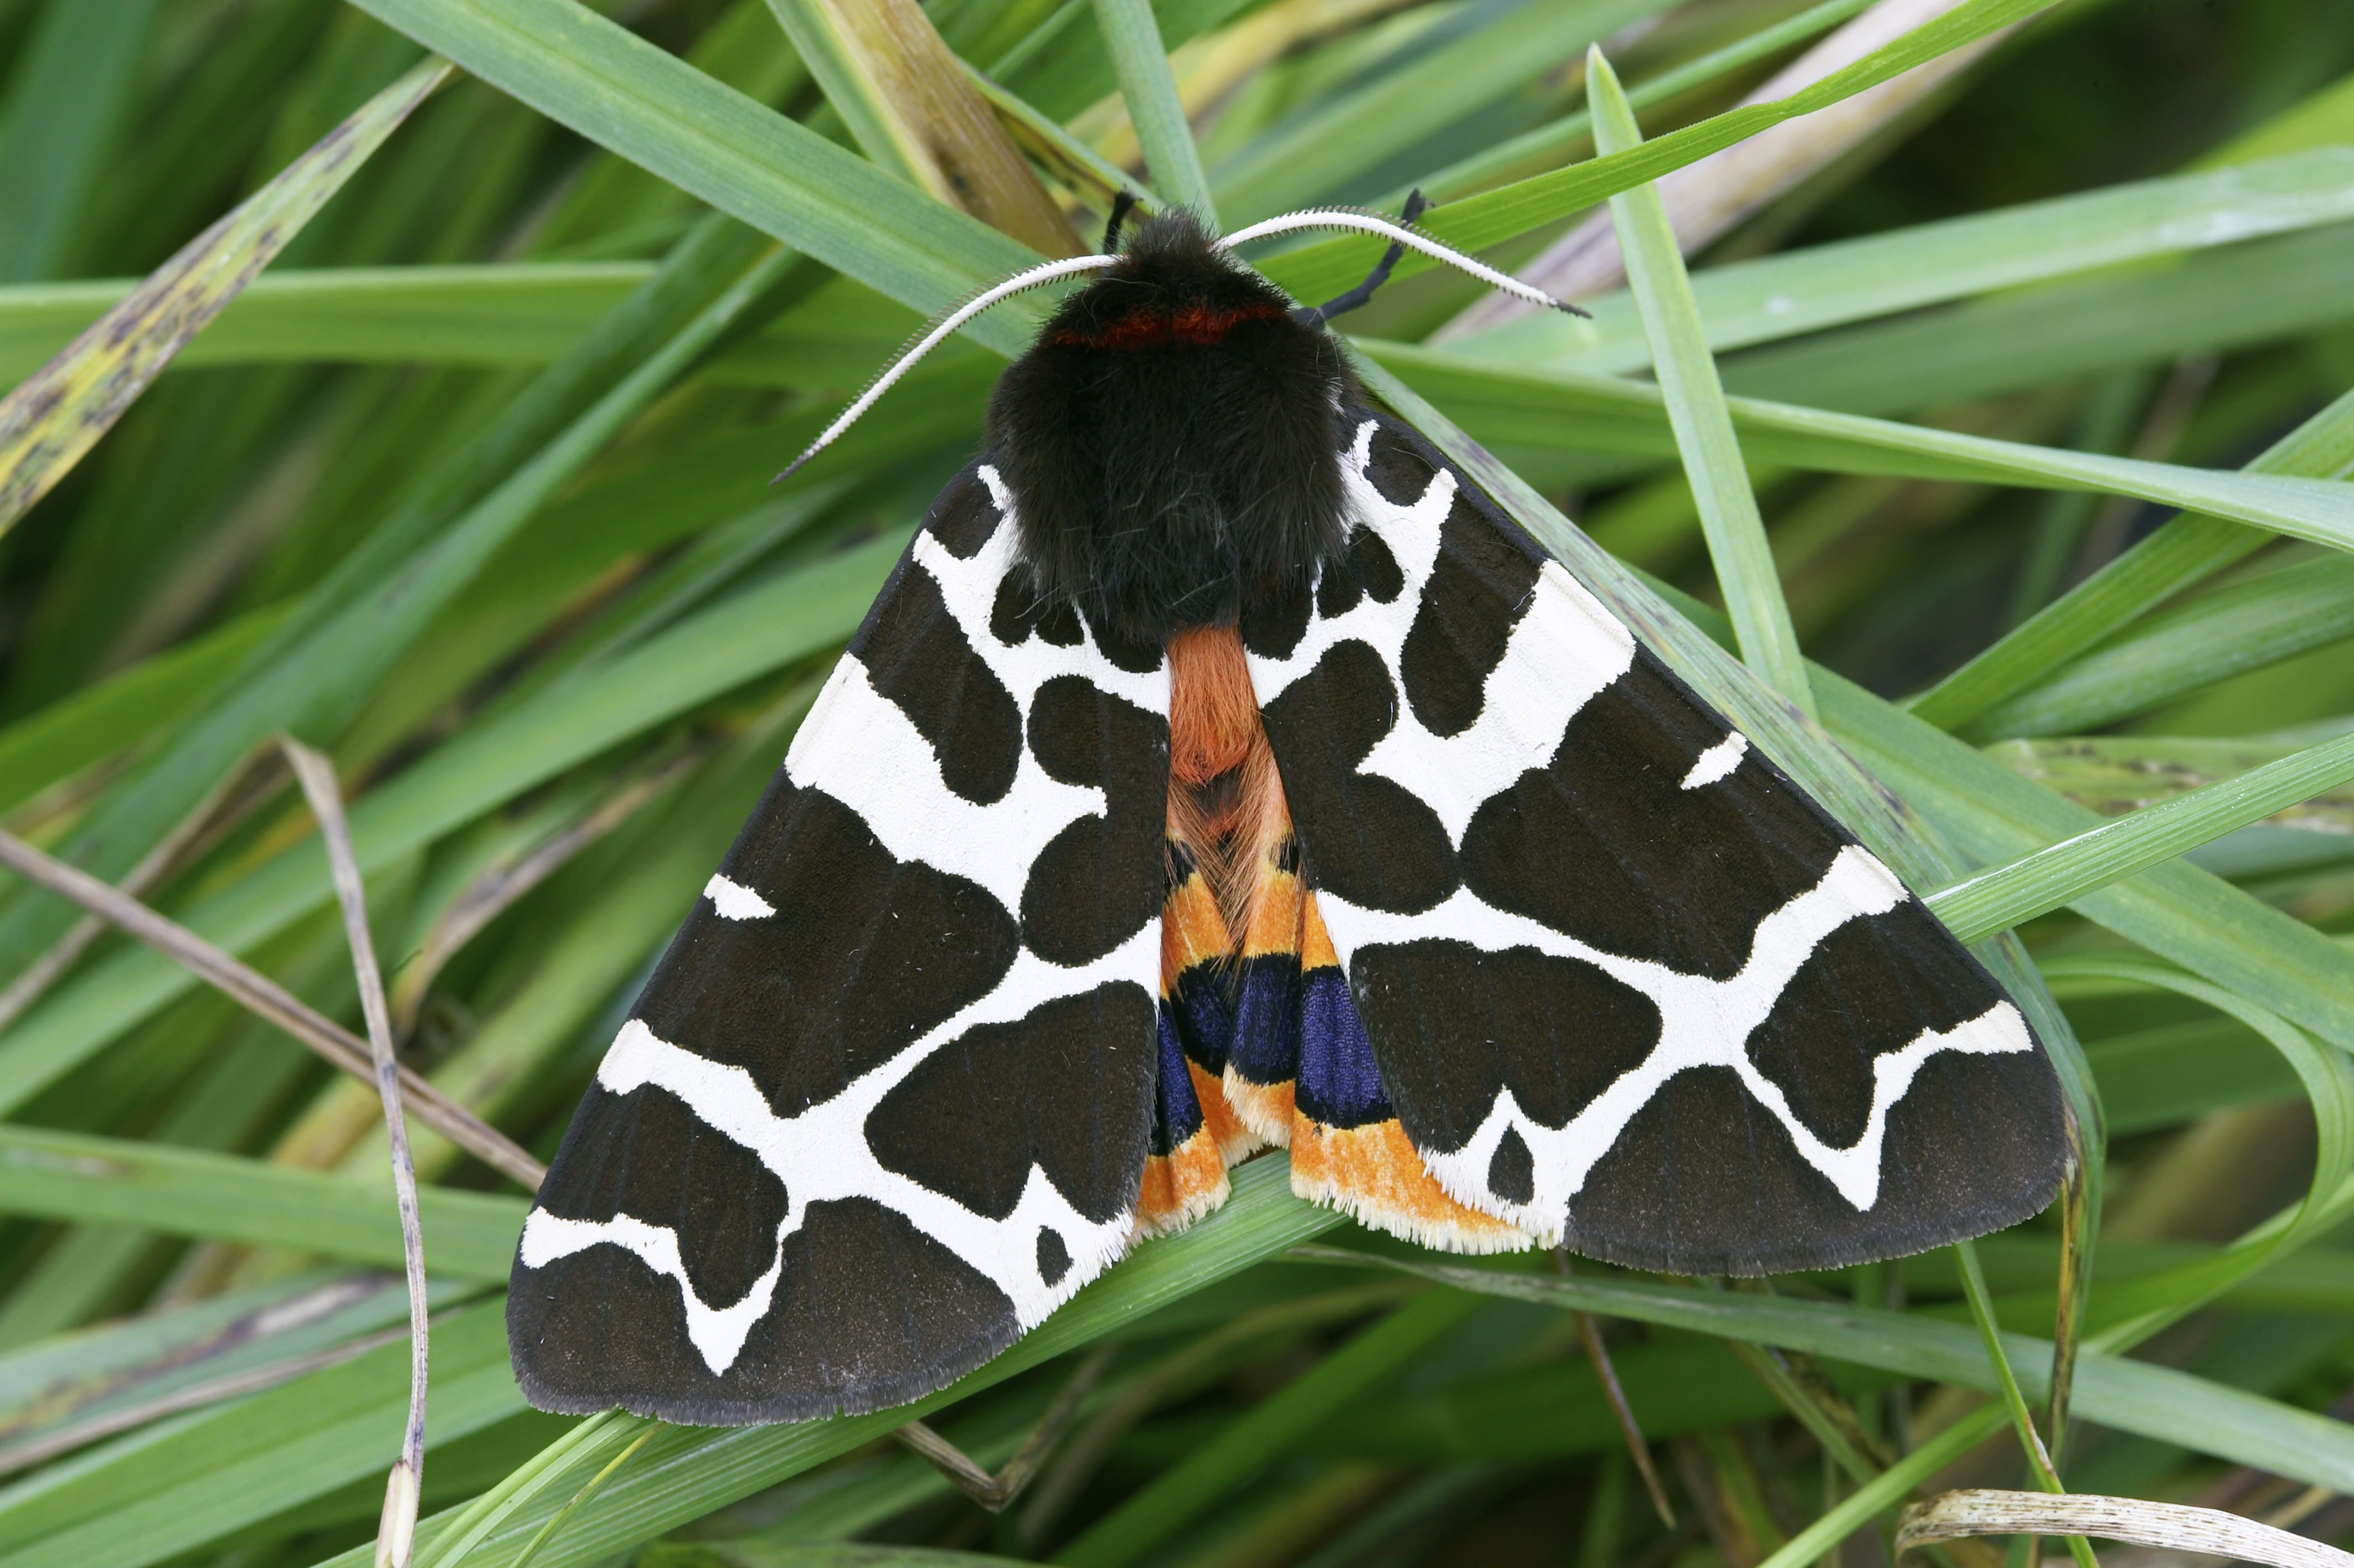 A moth with black and white spotted wings sits in the grass